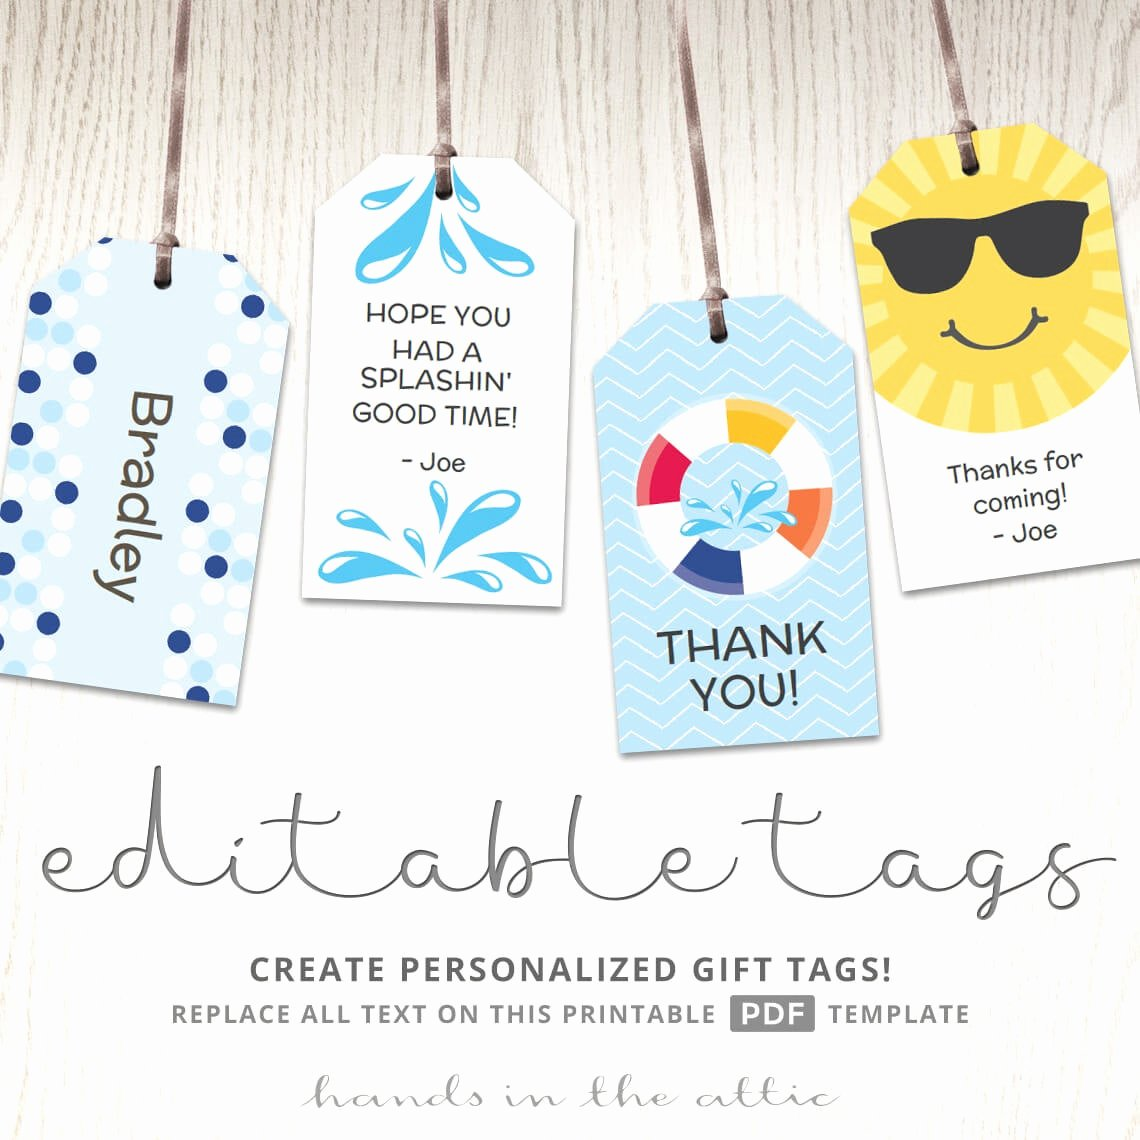 Printable Gift Tags Template Inspirational Editable T Tags T Tag Template Favor Tags Pool Party